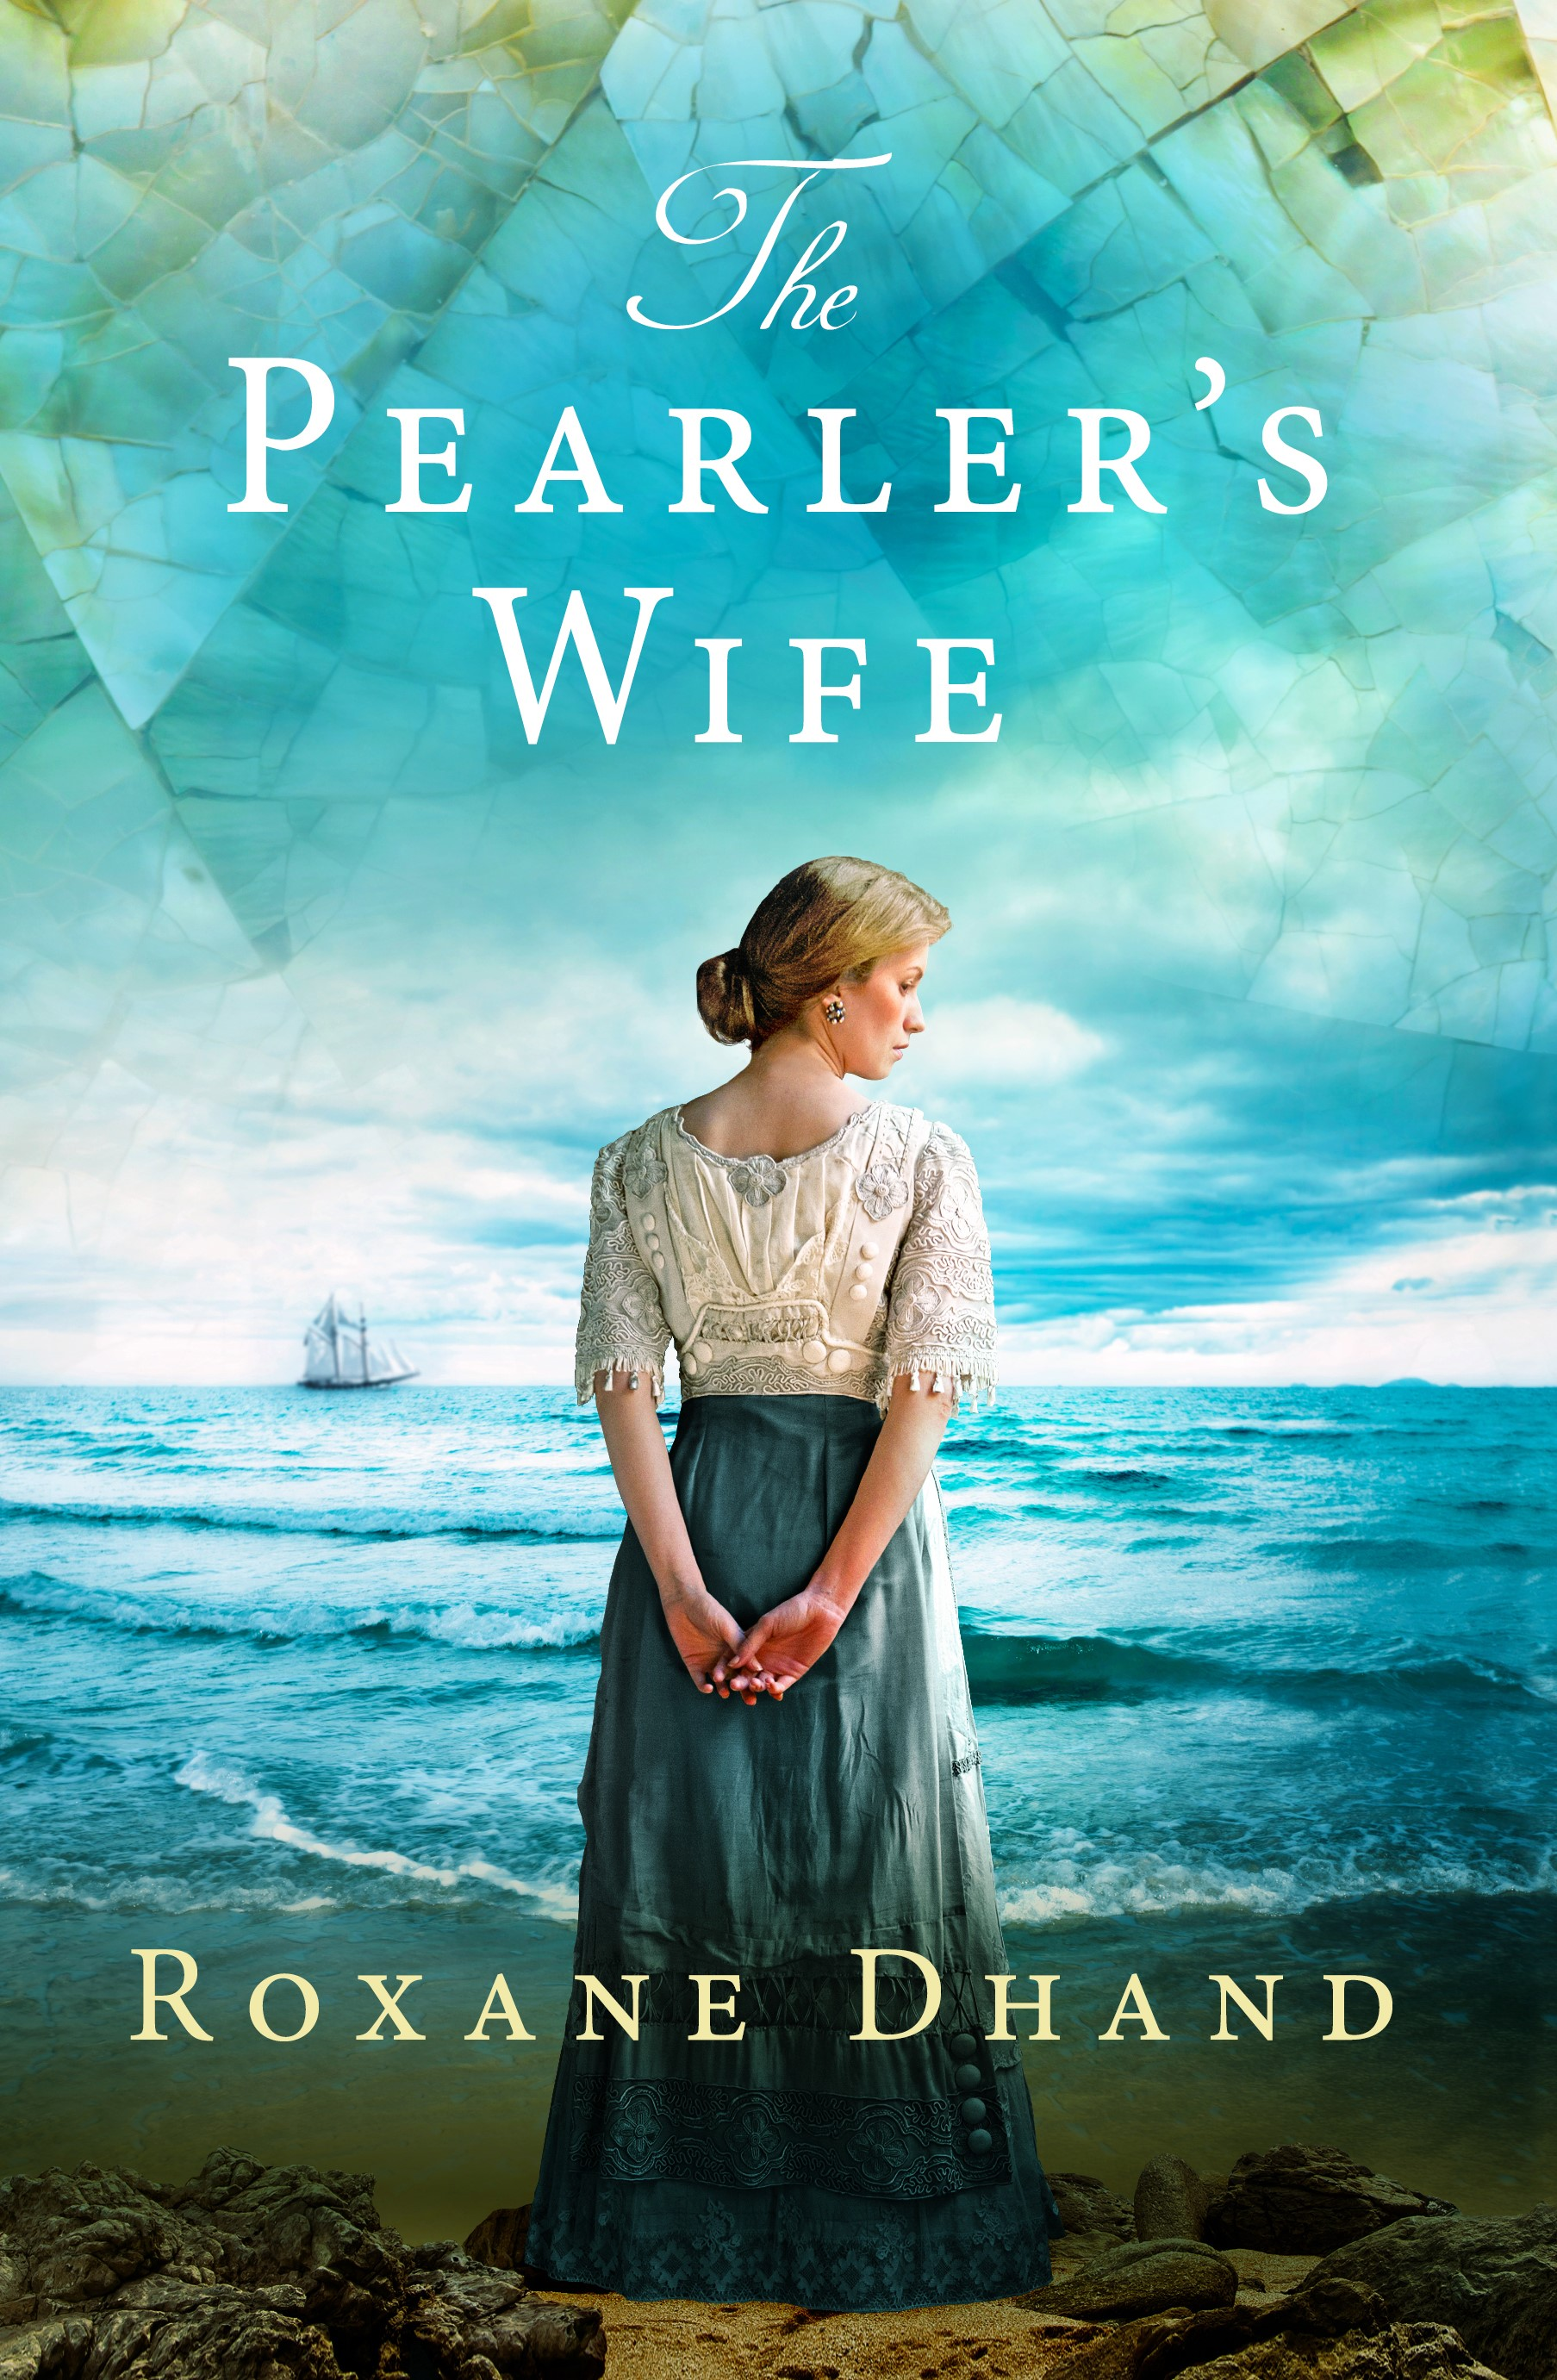 THE PEARLER'S WIFE  Bantam Australia/Harper Impulse UK, Feb 2018 Historical, 326 pages  From the high seas to the deep seabed, from the latticed verandahs of Buccaneer Bay to the gambling dens in Asia Place, THE PEARLER'S WIFE is a stunning debut, inspired by a small yet pivotal moment in Australian history.